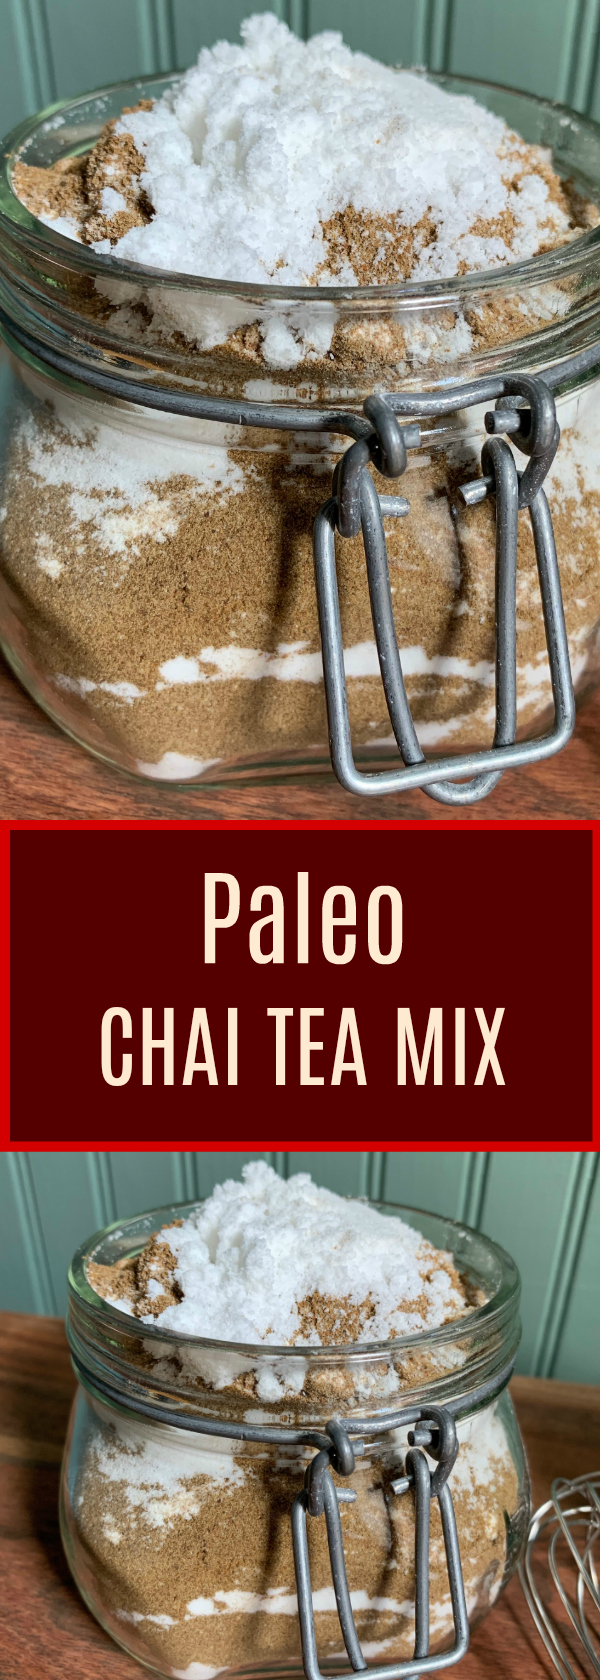 Paleo Chai Tea Mix. Combine it with hot water or your favorite non-dairy milk for a delicious hot Chai that is sweetened with coconut sugar!